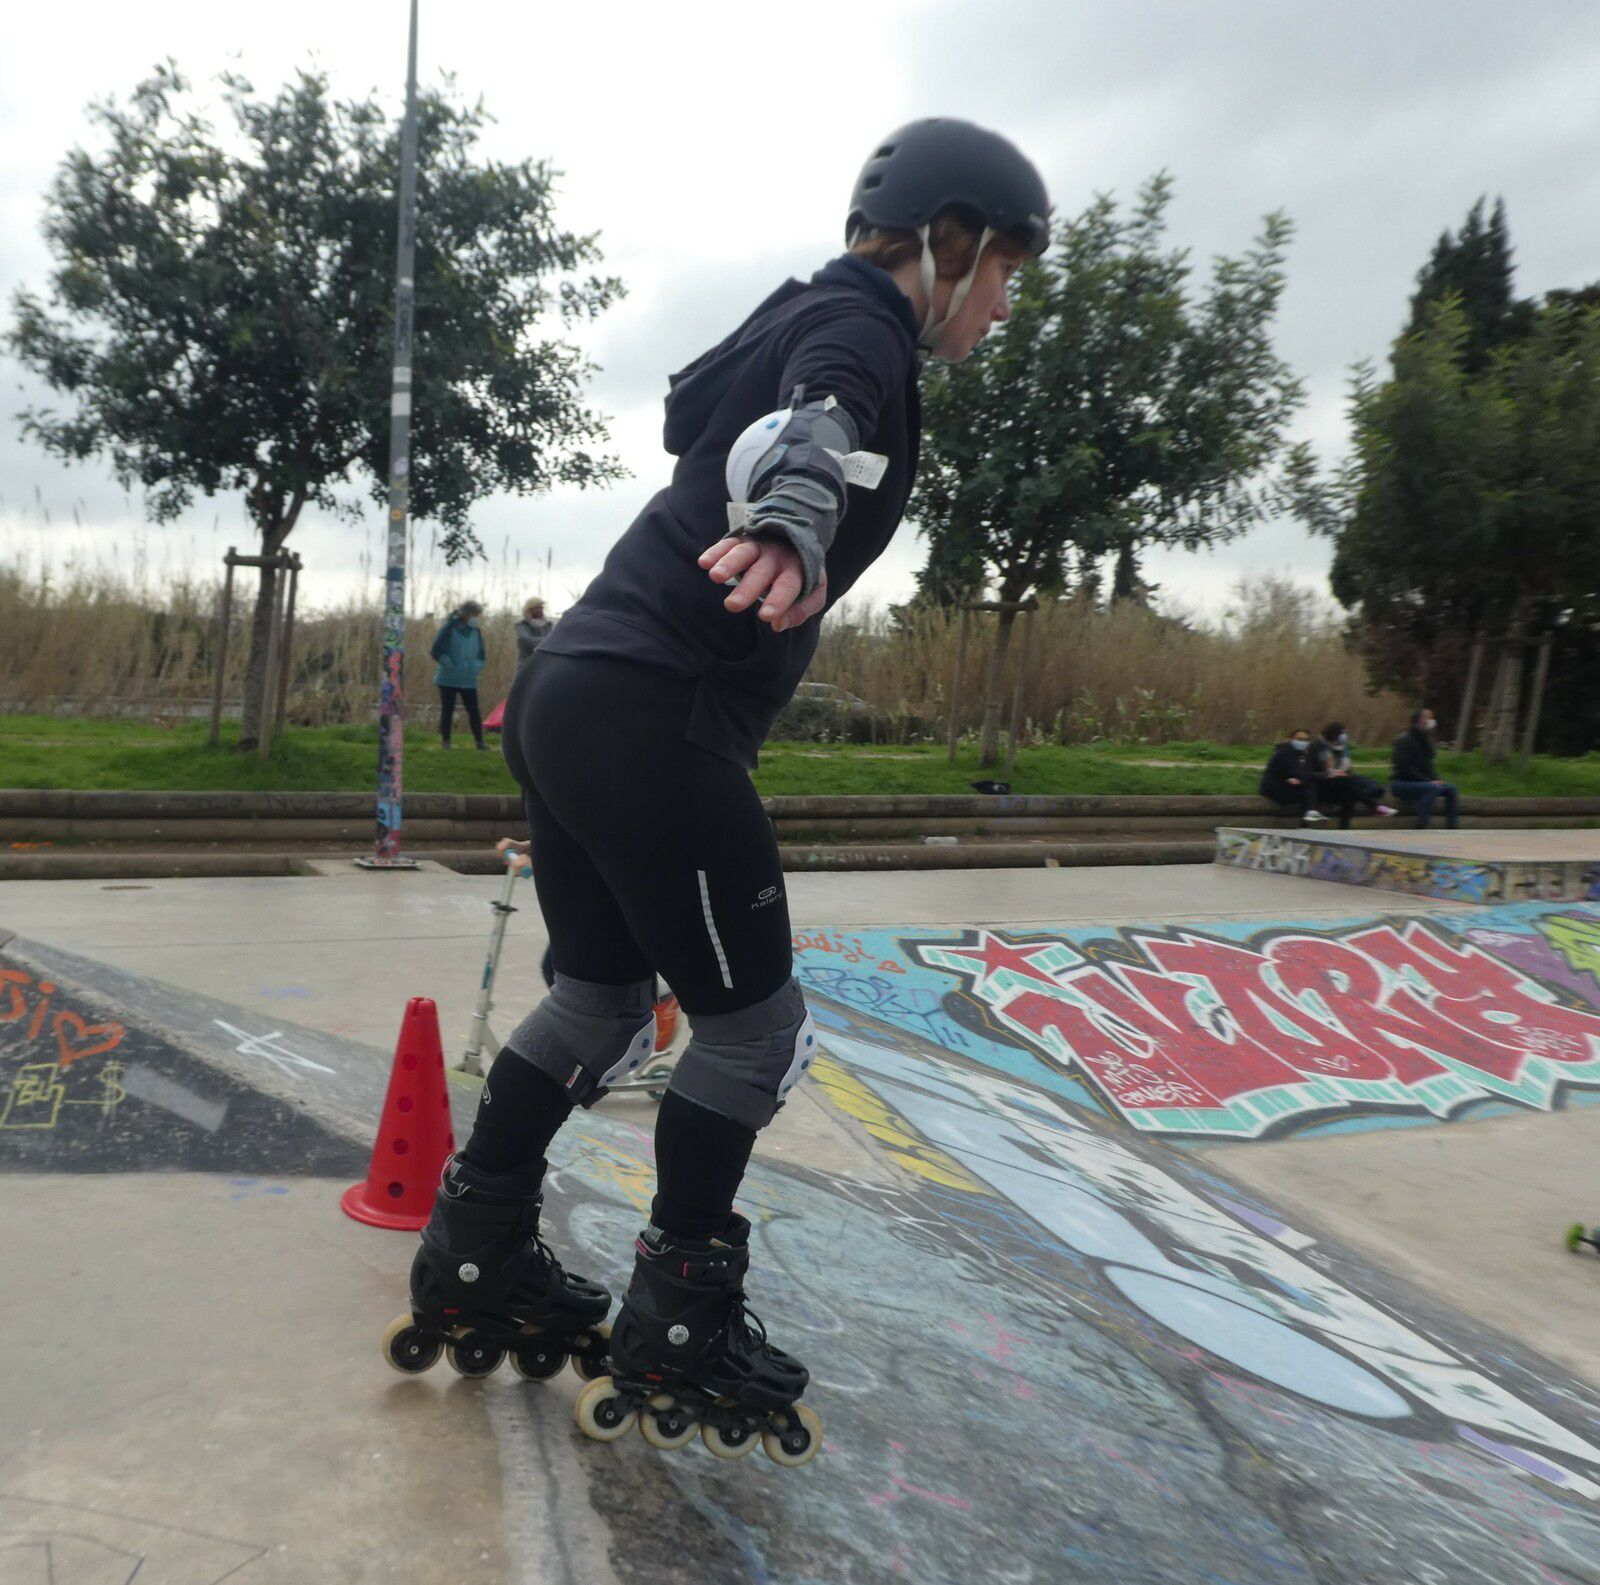 cours, roller lib, adulte, nimes, stage, patin à roulettes, gard